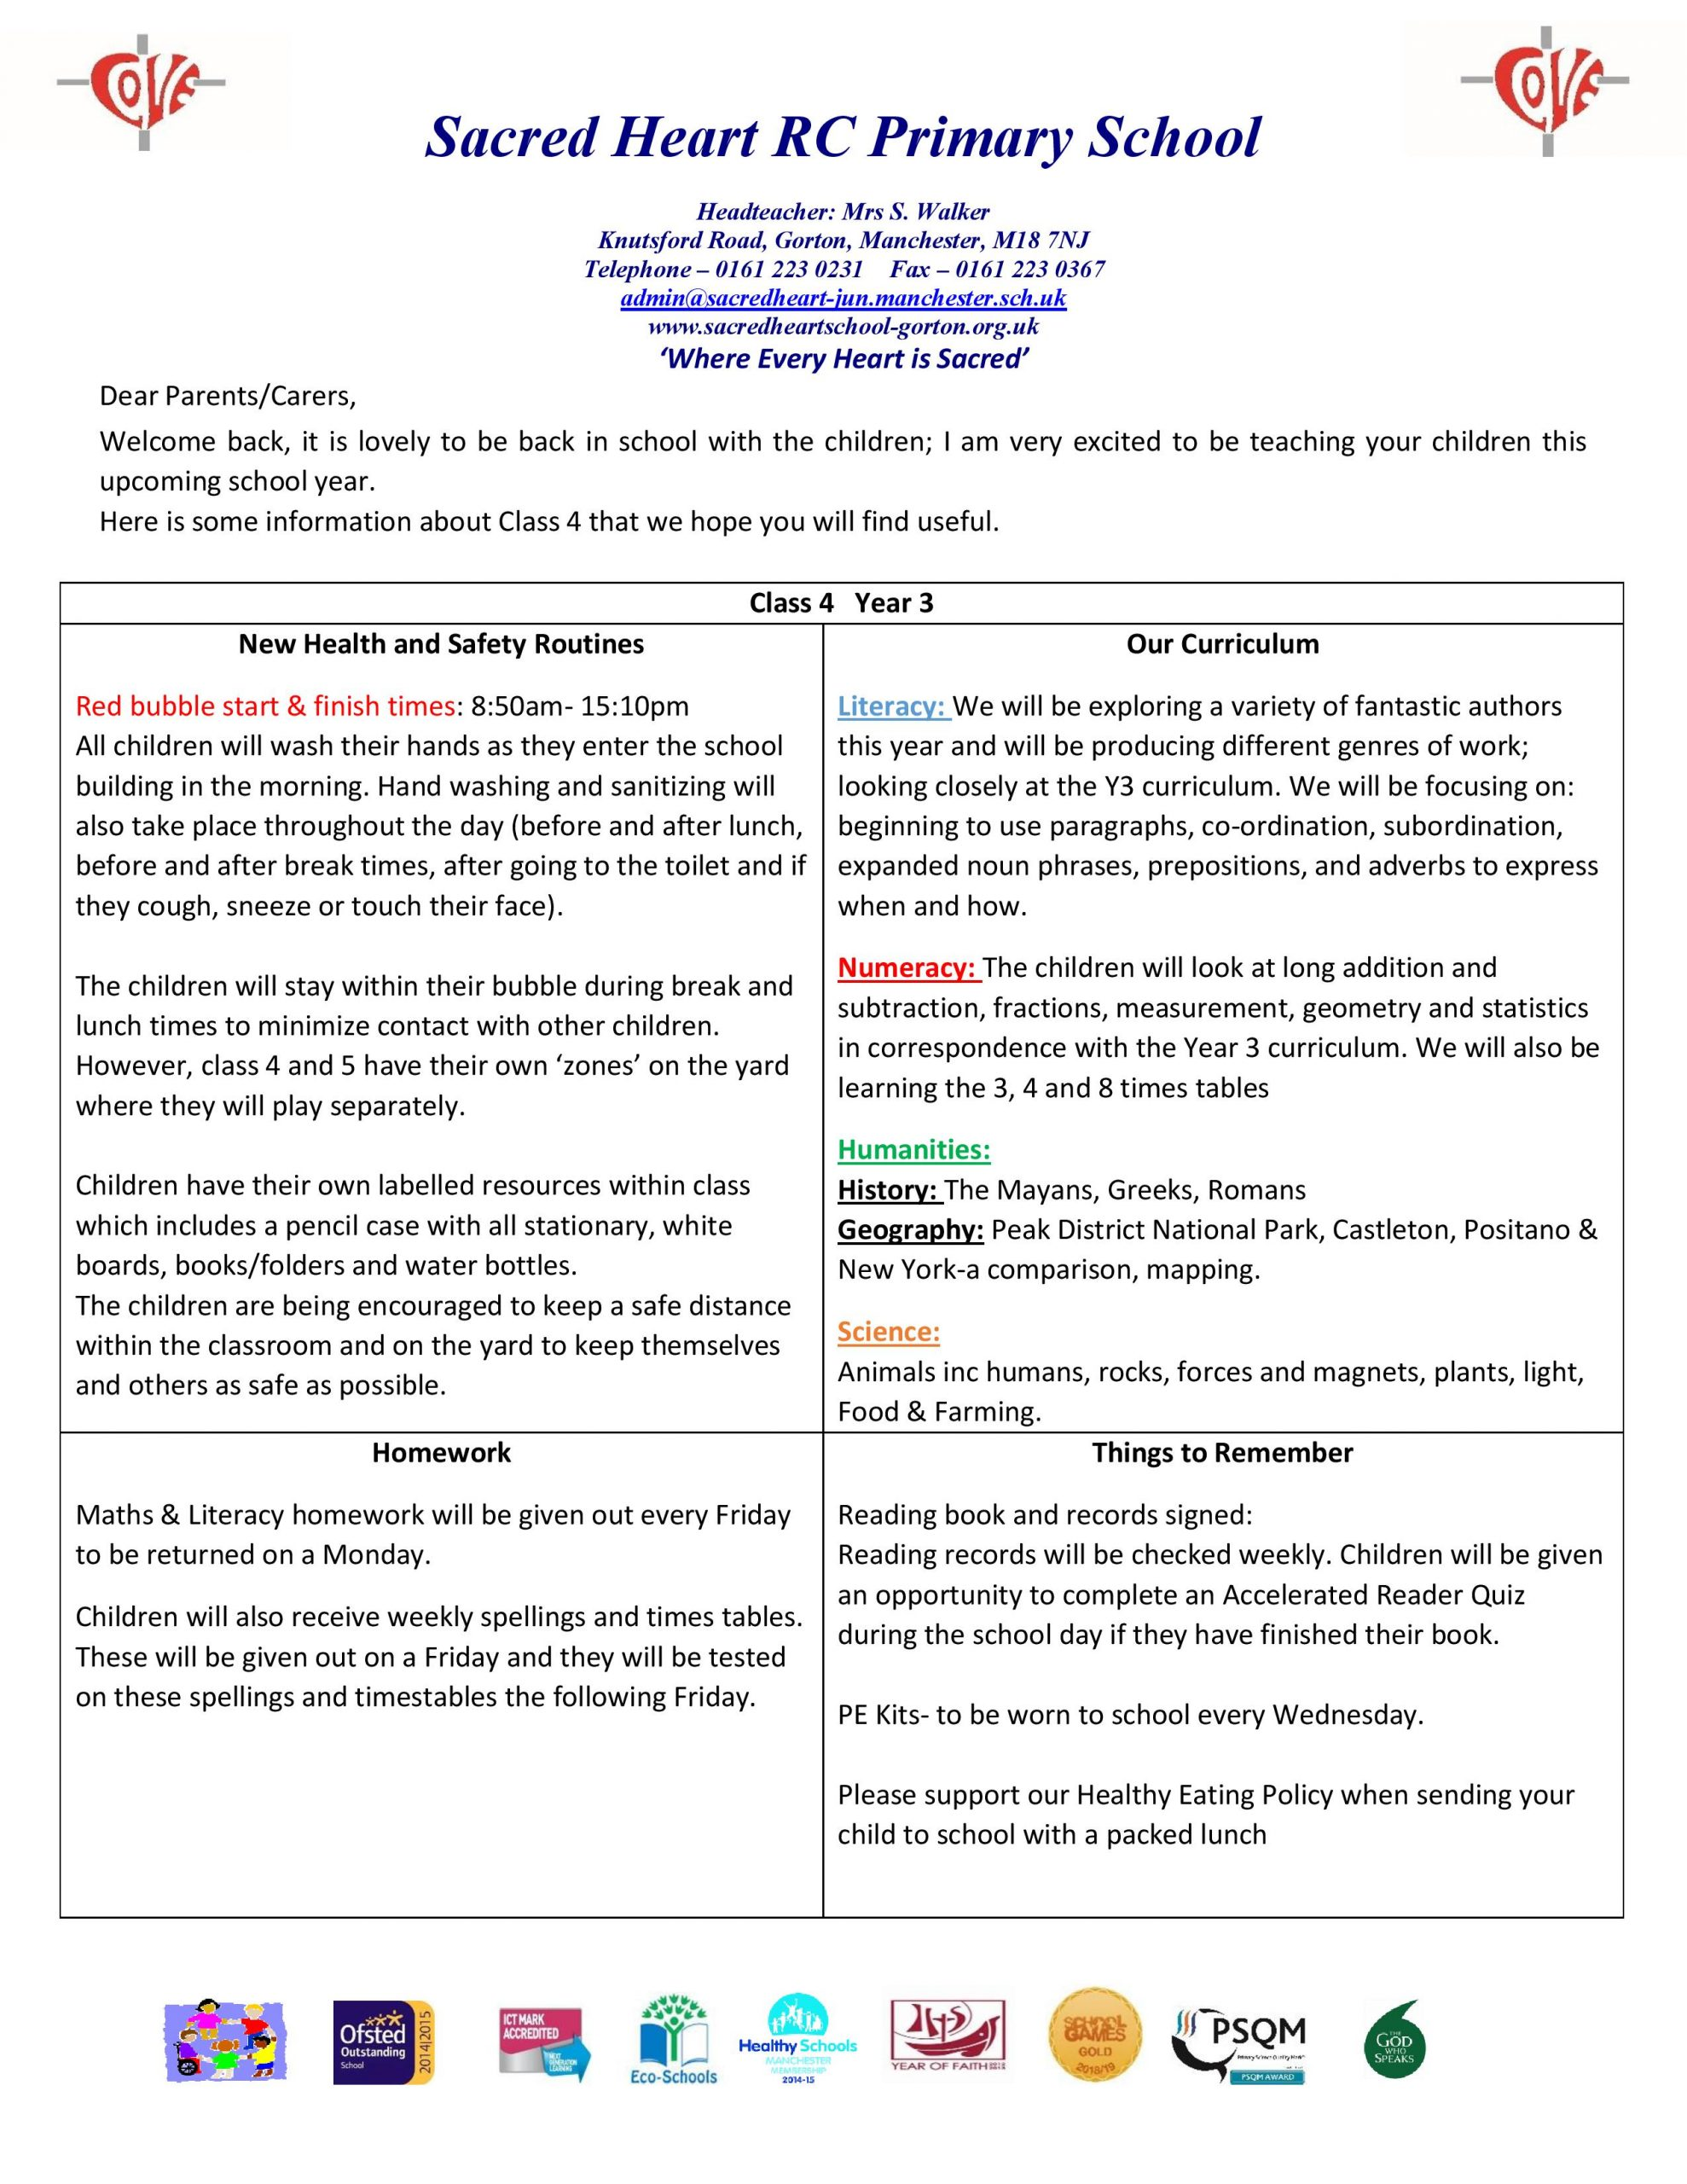 Class 4 Home Learning Guidance